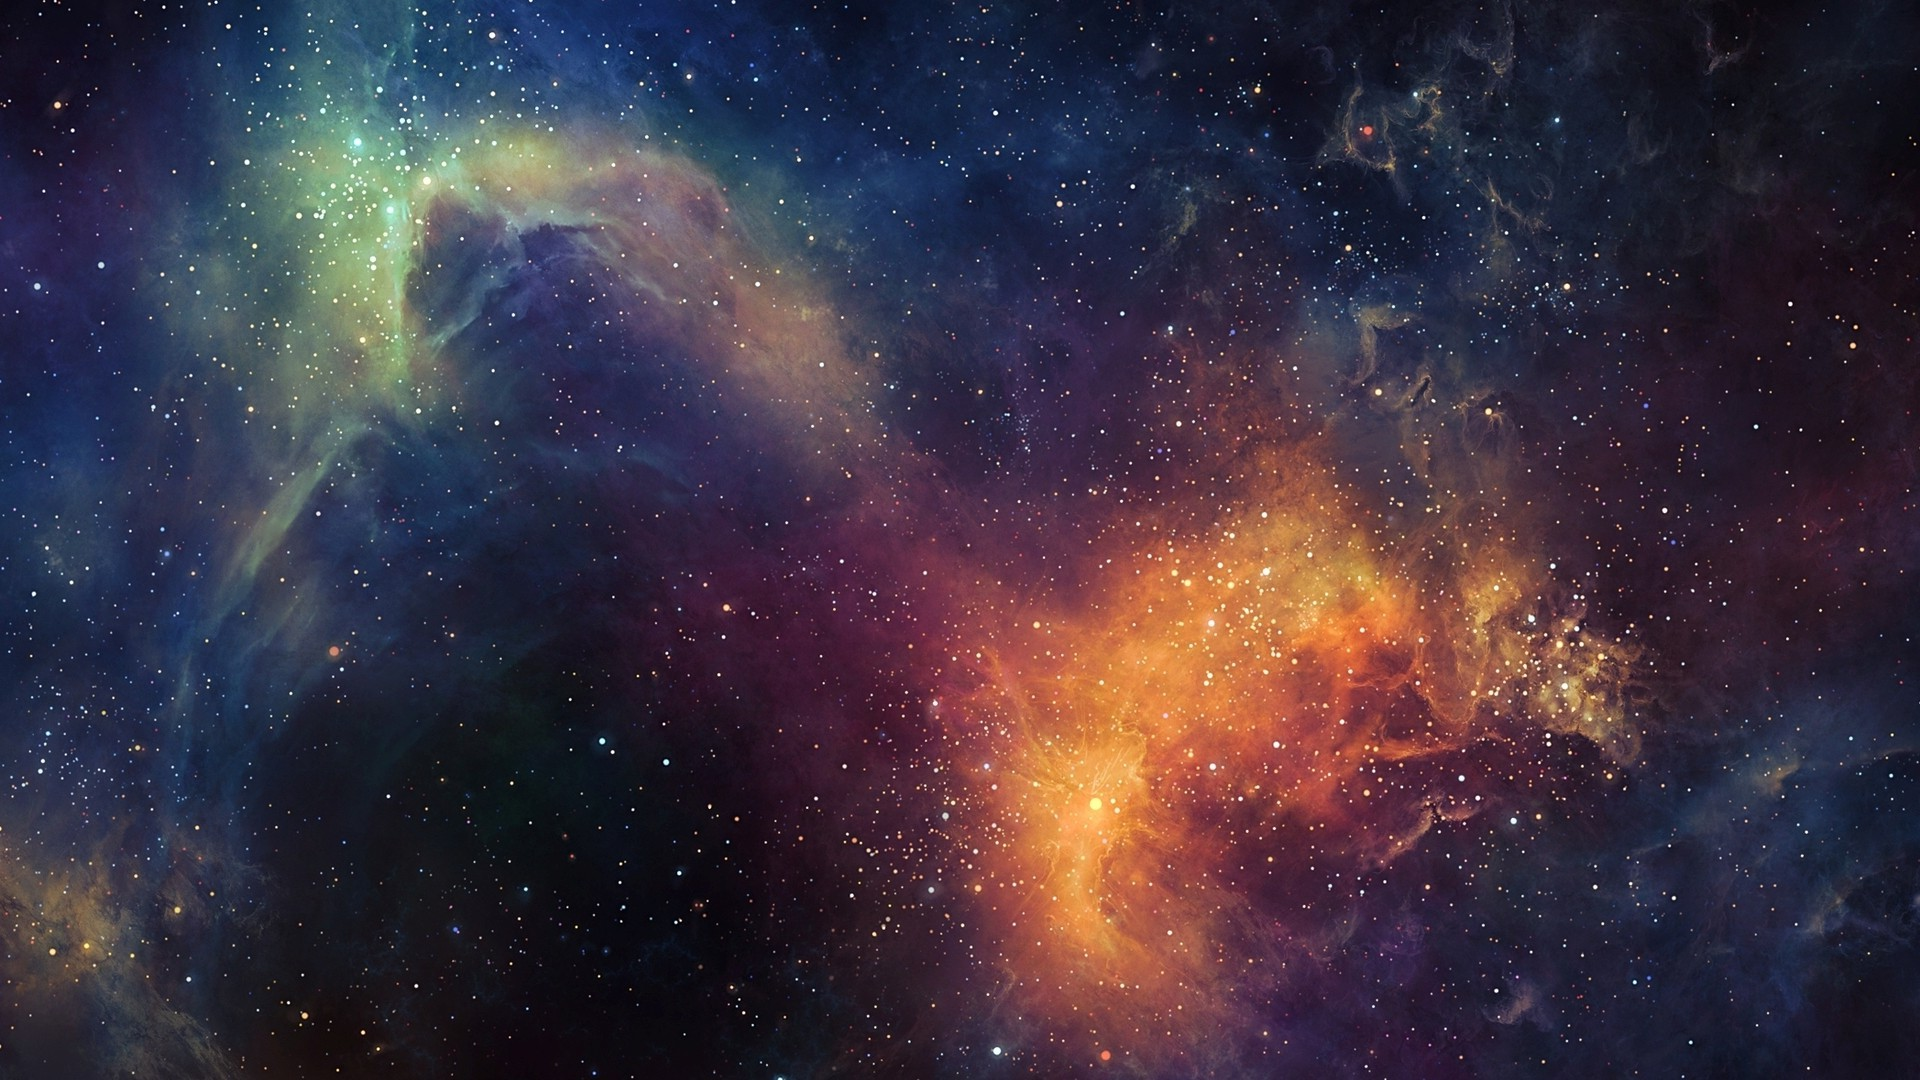 Thunderstorm Wallpaper 3d Space Nebula Colorful Tylercreatesworlds Wallpapers Hd